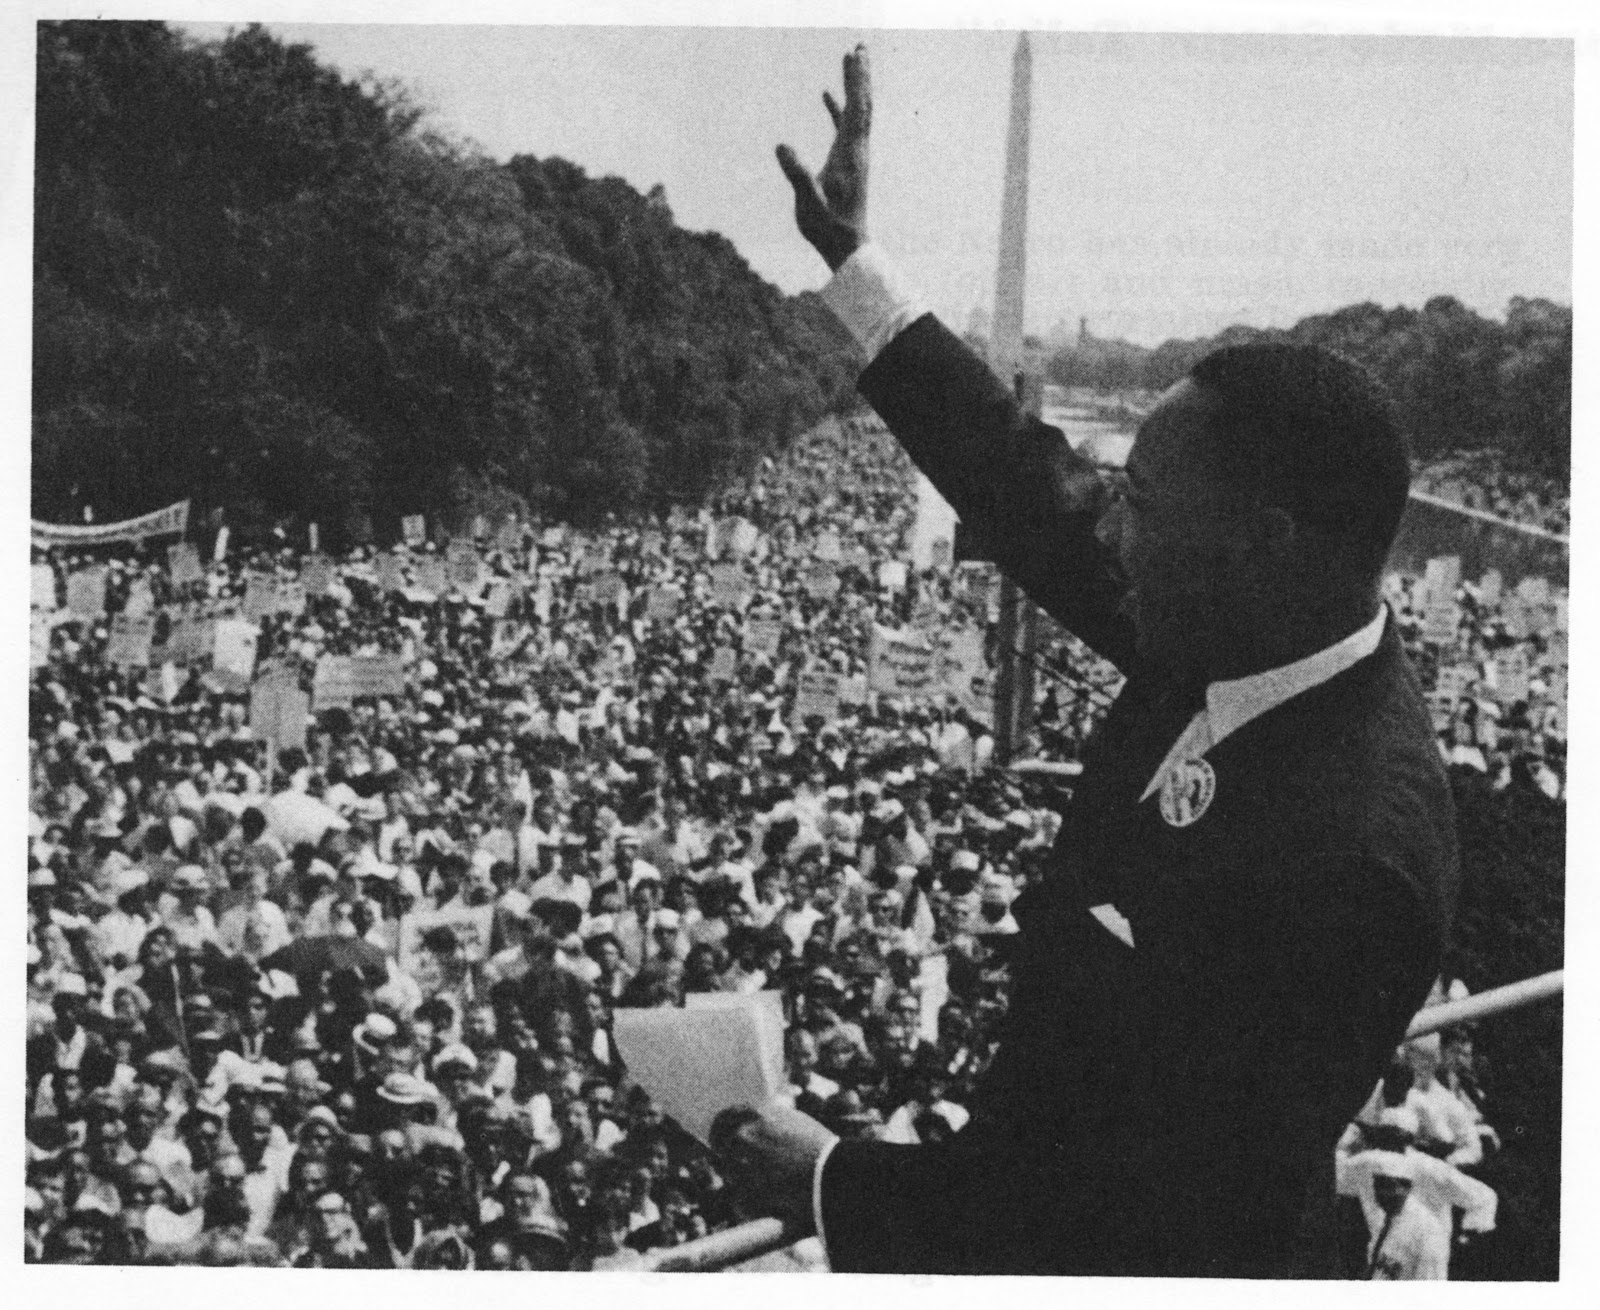 Luther King's I Have A Dream Speech Speech | Martin Luther King Jr ...